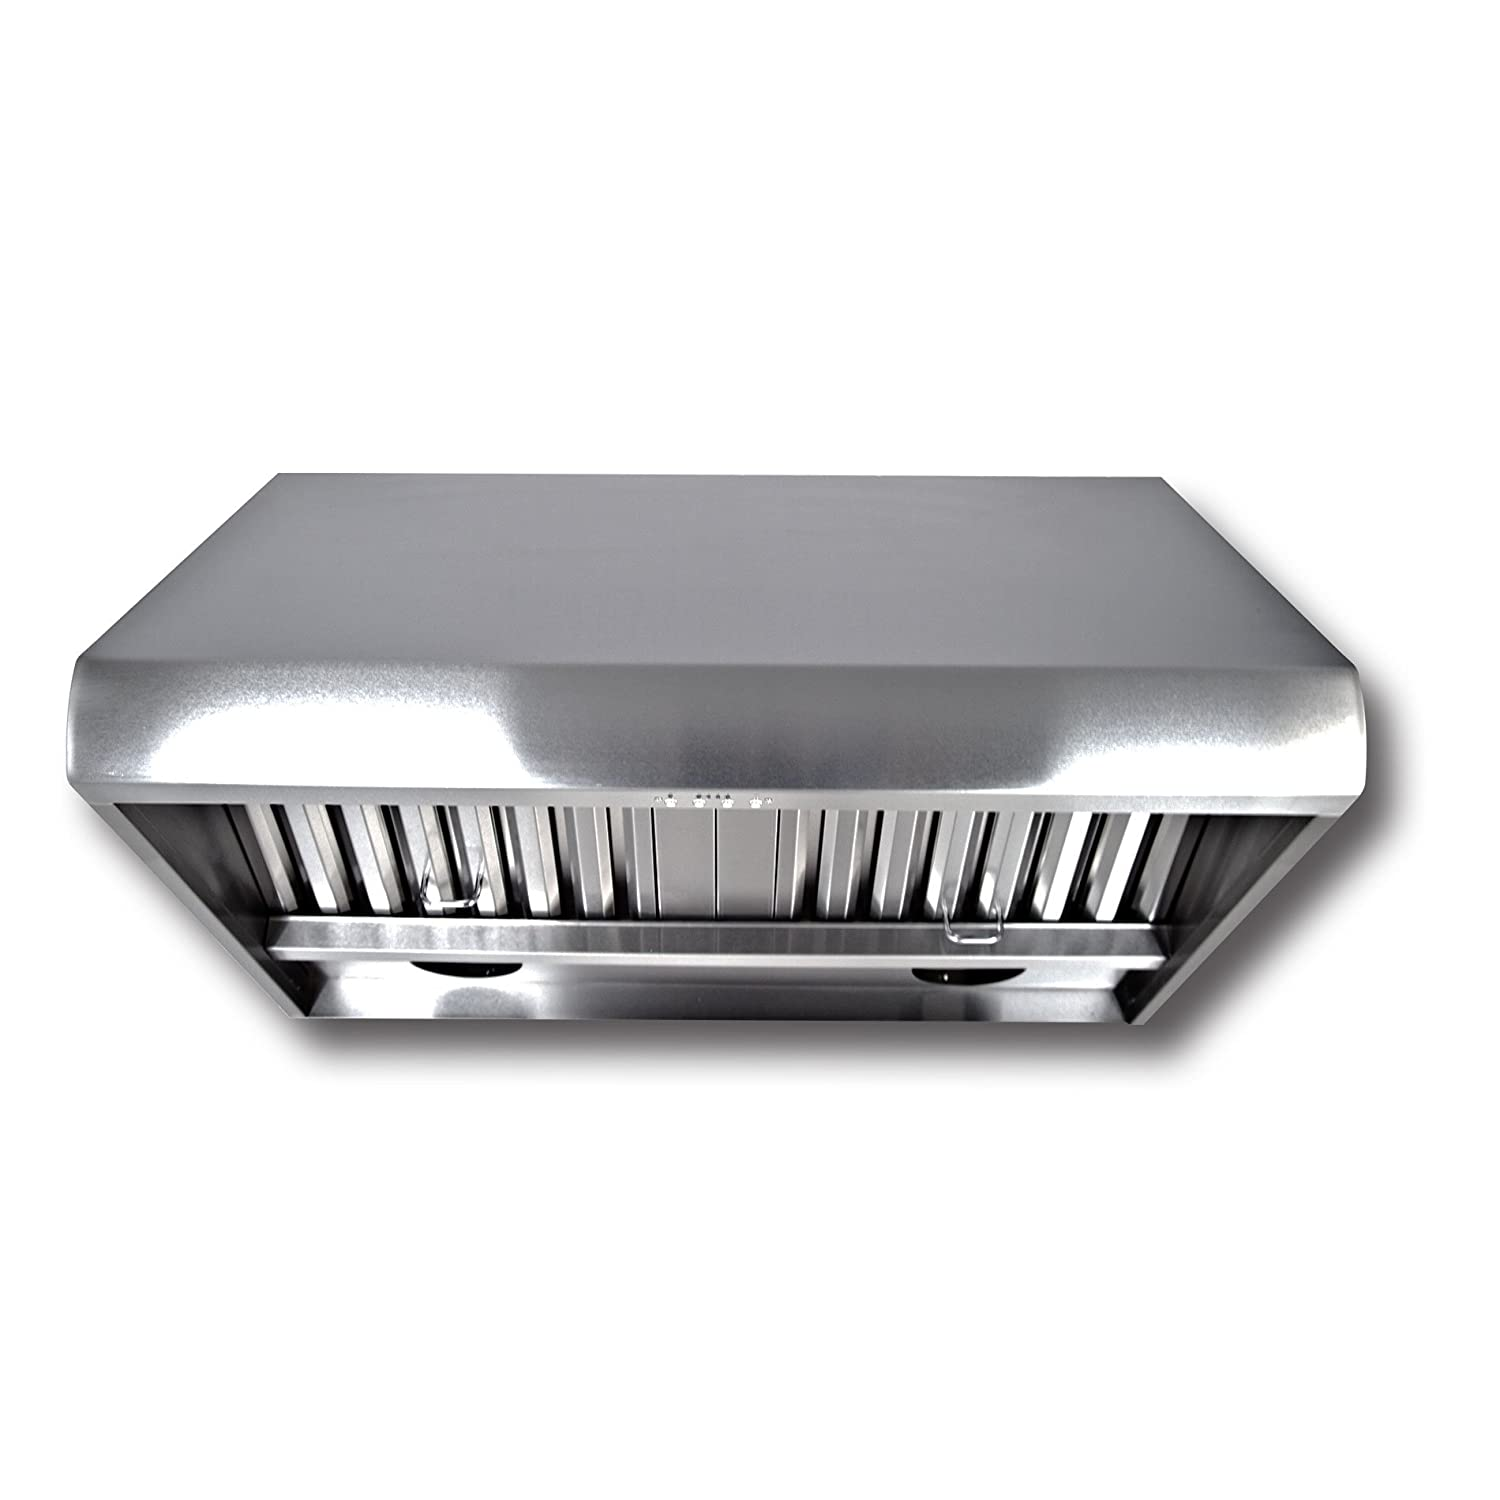 Proline PLJW 109 4 Speed Wall/Under Cabinet Range Hood - 2000 Max CFM - Stainless Professional Baffle Filters Dishwasher Safe - 3 Year Warranty - Sizes include 30 36 42 48 54 and 60 inch